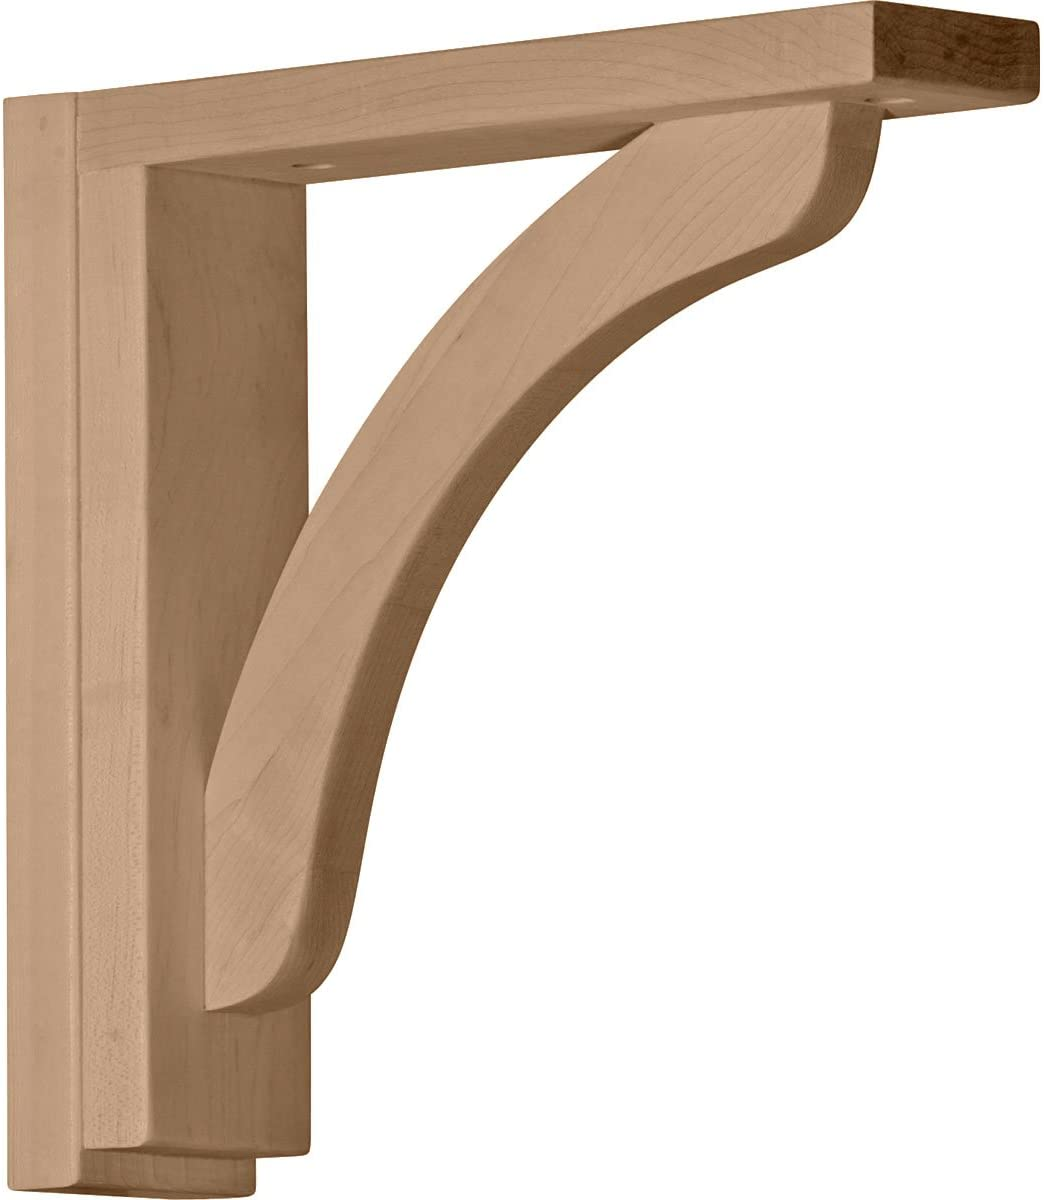 Ekena Millwork BKT02X10X10REAL-CASE-2 Reece Shelf Bracket, Alder - Ready to be Stained